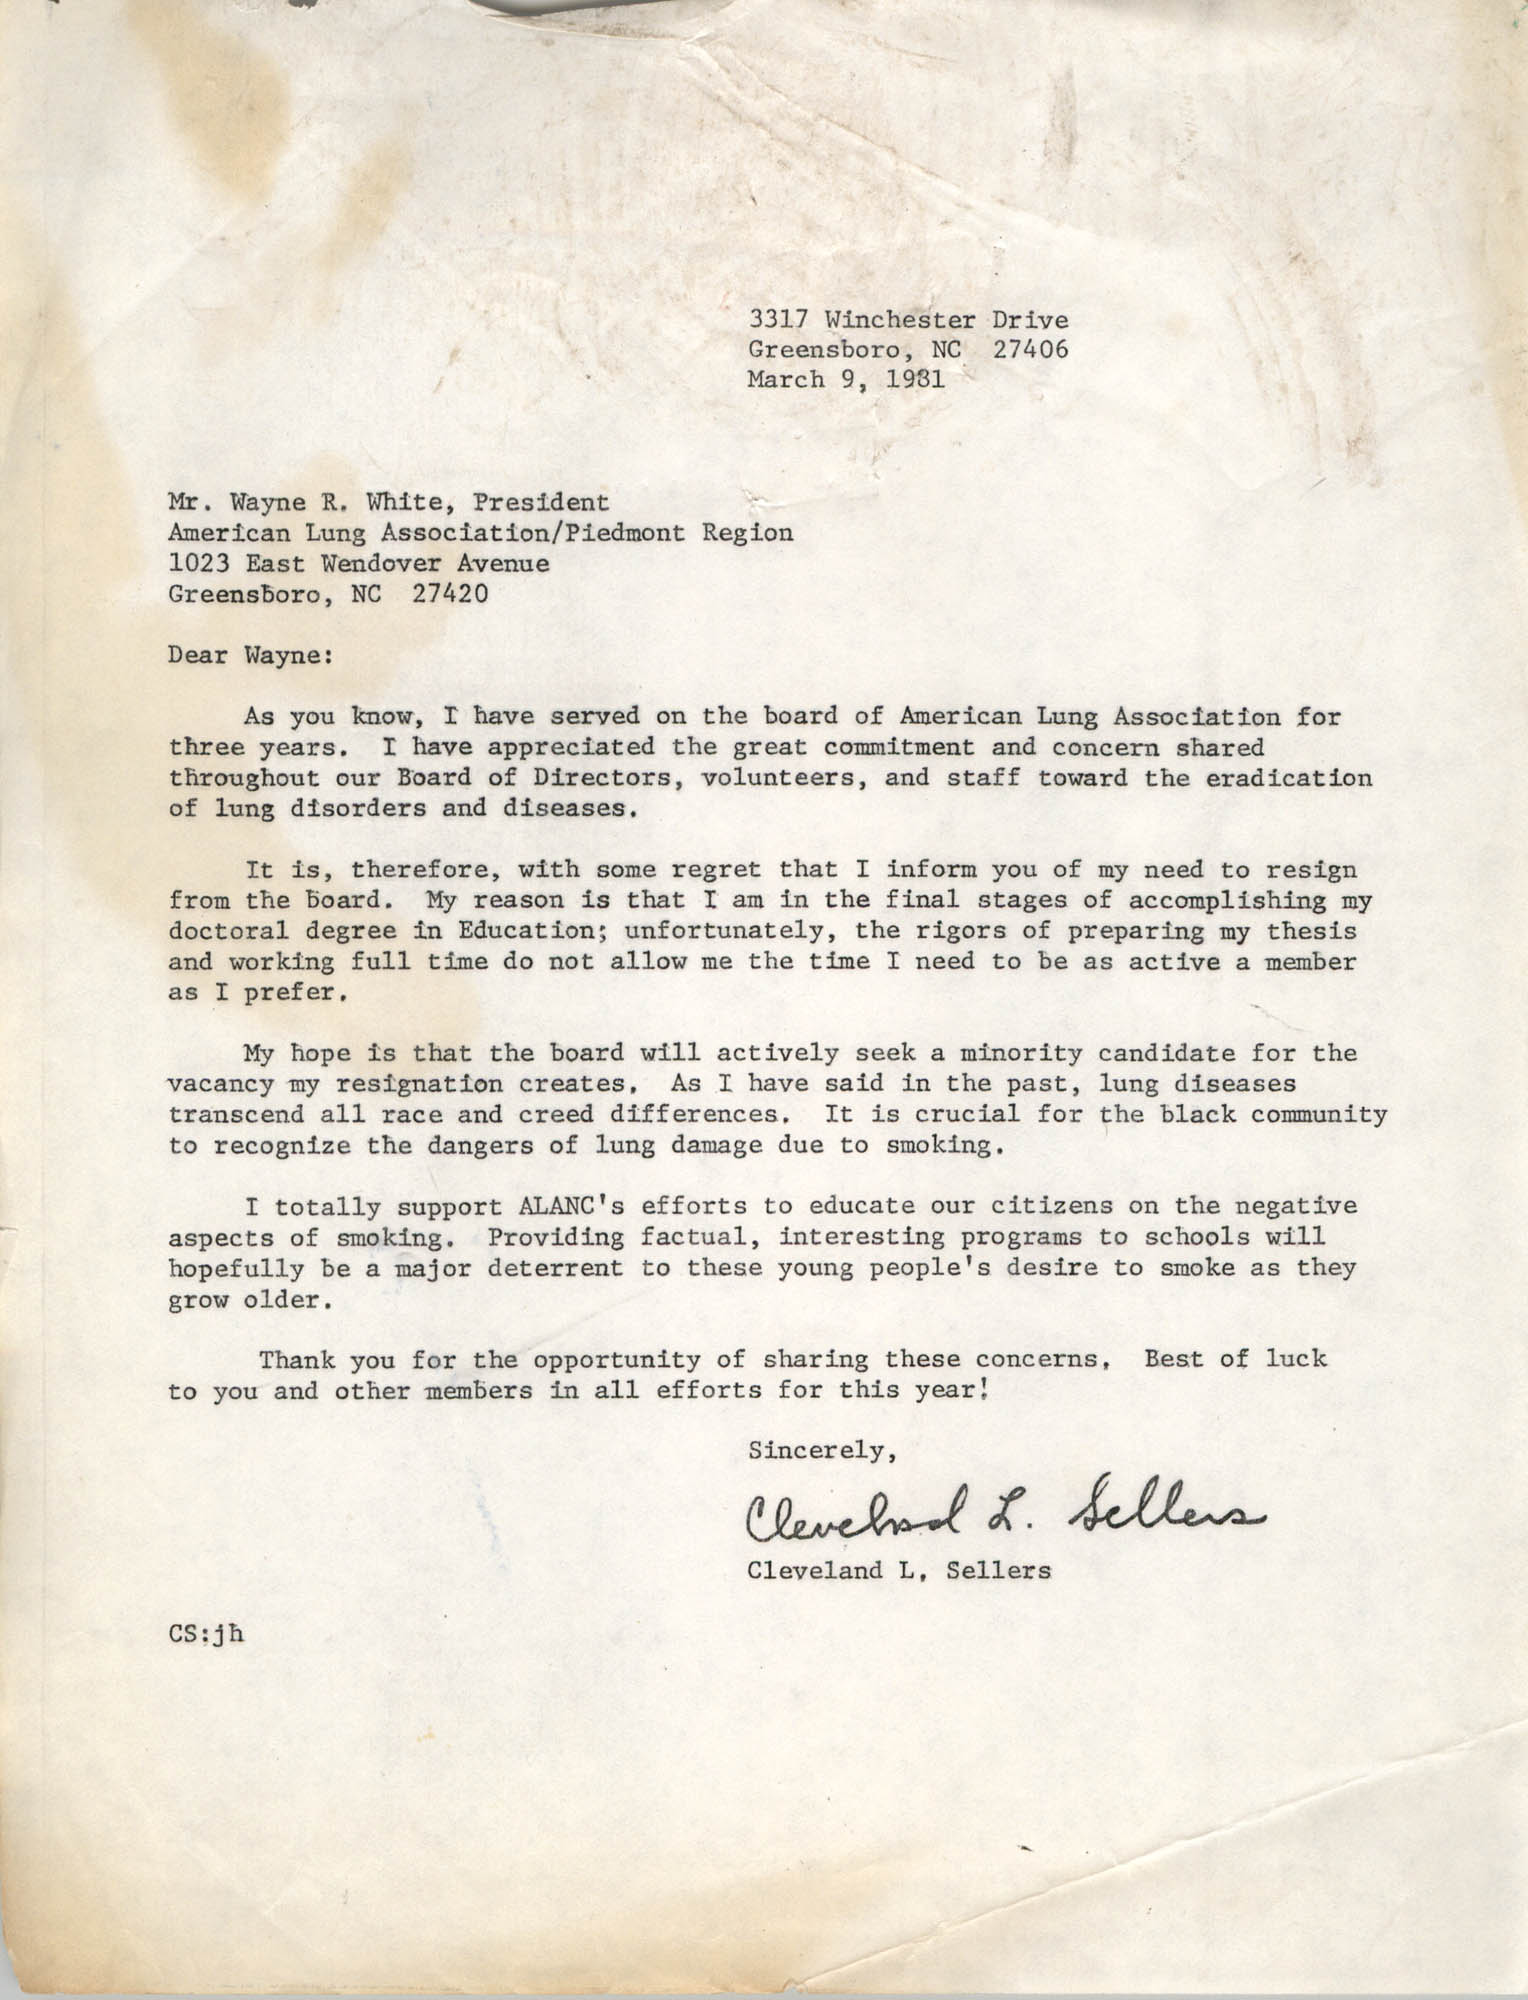 Letter from Cleveland Sellers to Wayne R. White, March 9, 1981